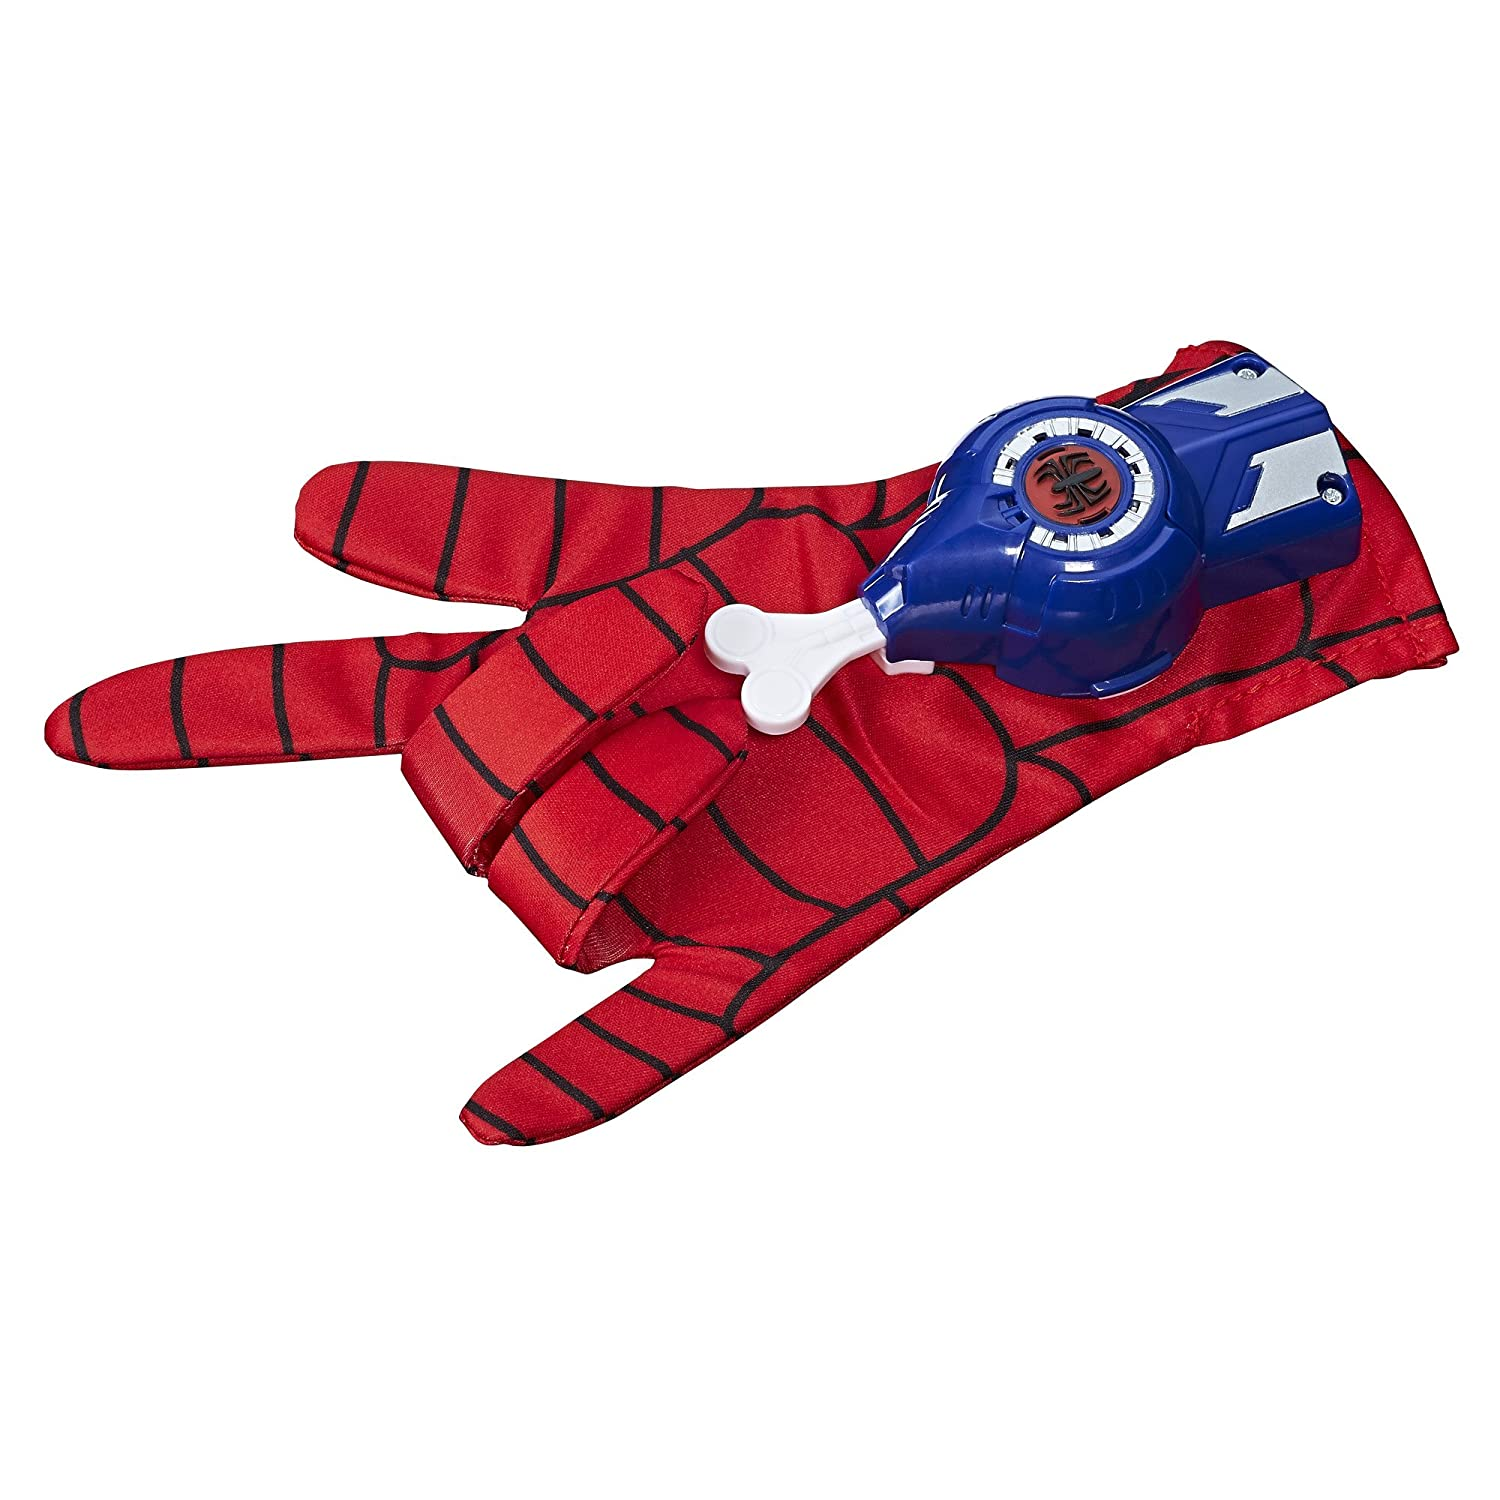 Spider-Man Marvel Hero FX Glove Hasbro B9762